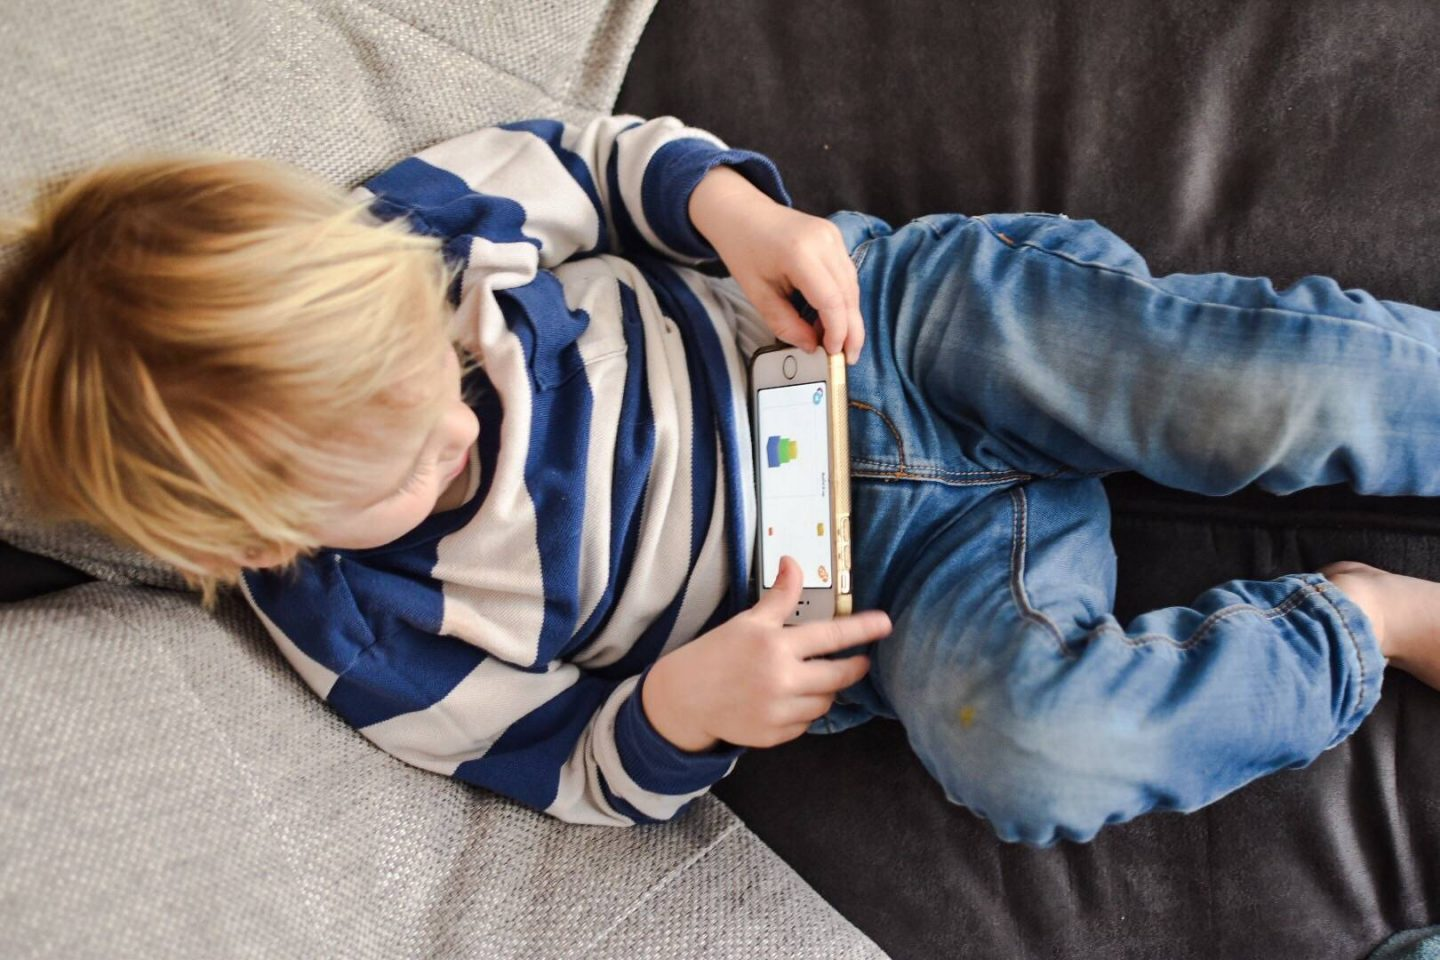 KidzInMind is an 'app of apps', unlocking over £50 worth of educational games and apps that can be played by children on smartphones & tablets